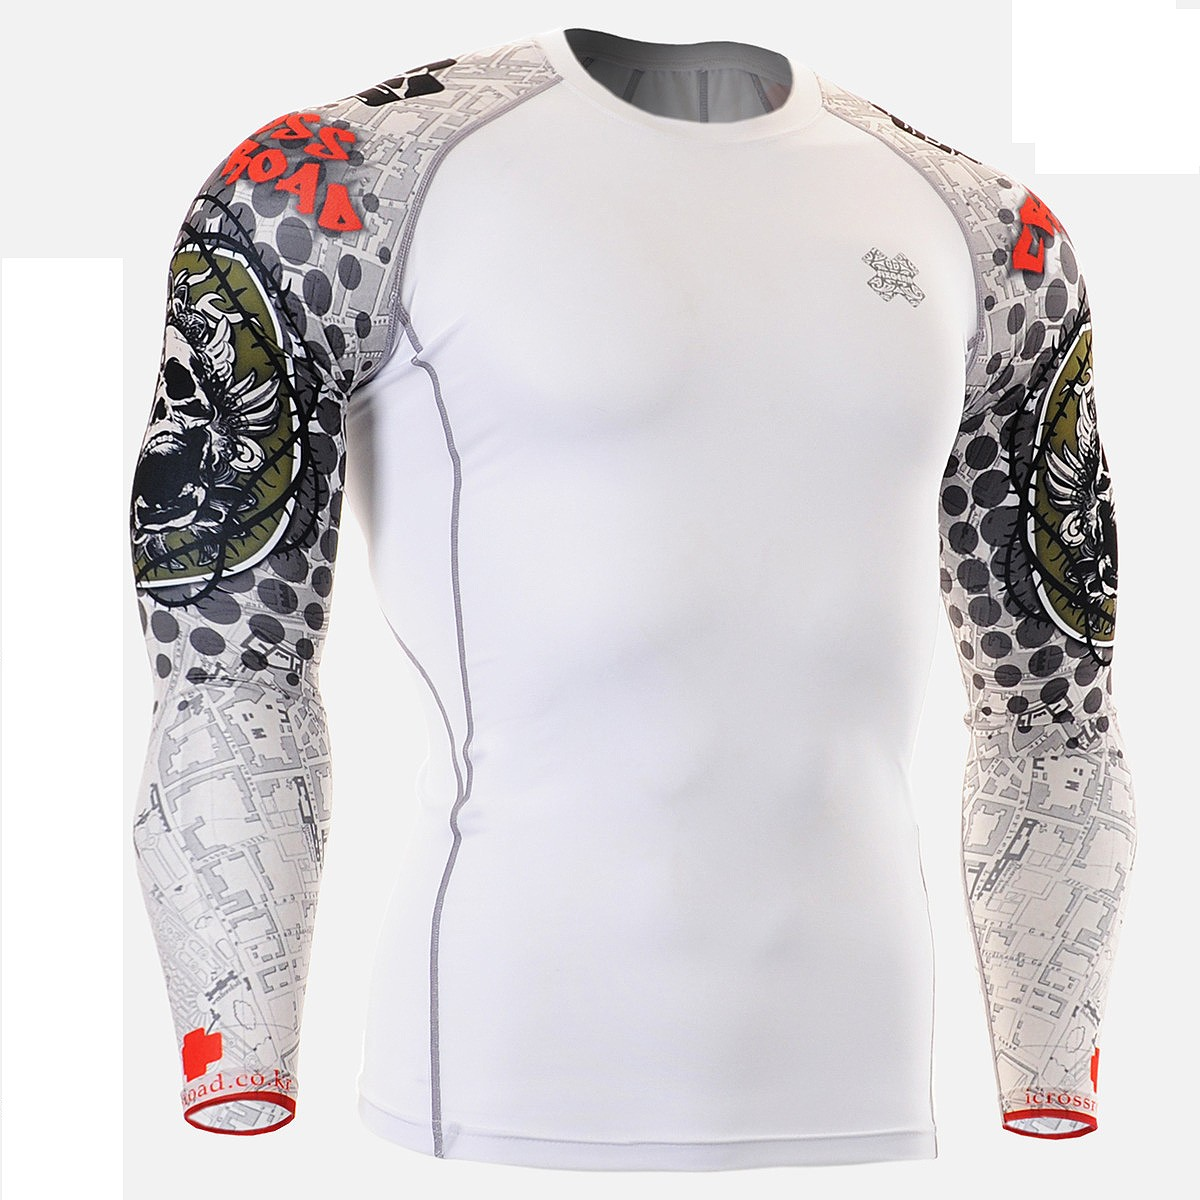 FIXGEAR CPD/_W5 Mens Compression base layer shirt design training gym MMA workout